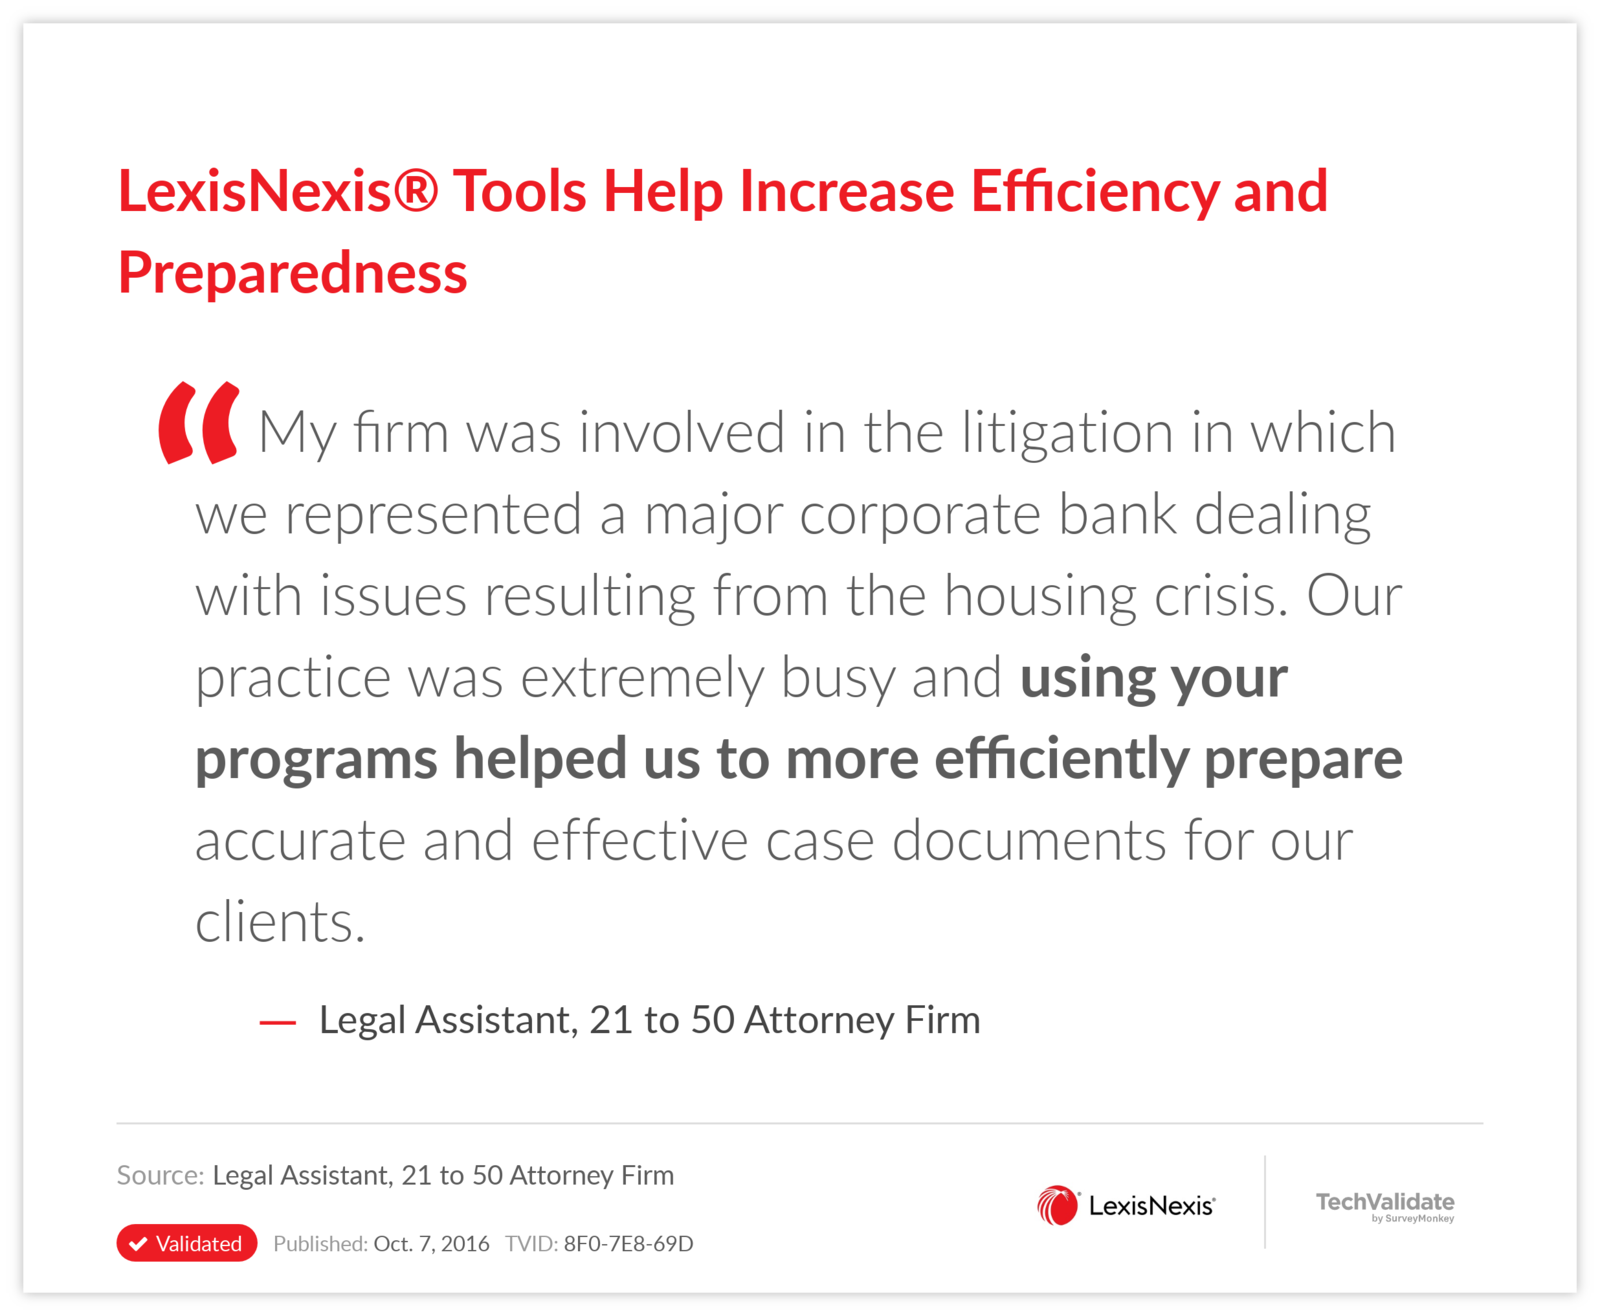 LexisNexis® Tools Help Increase Efficiency and Preparedness